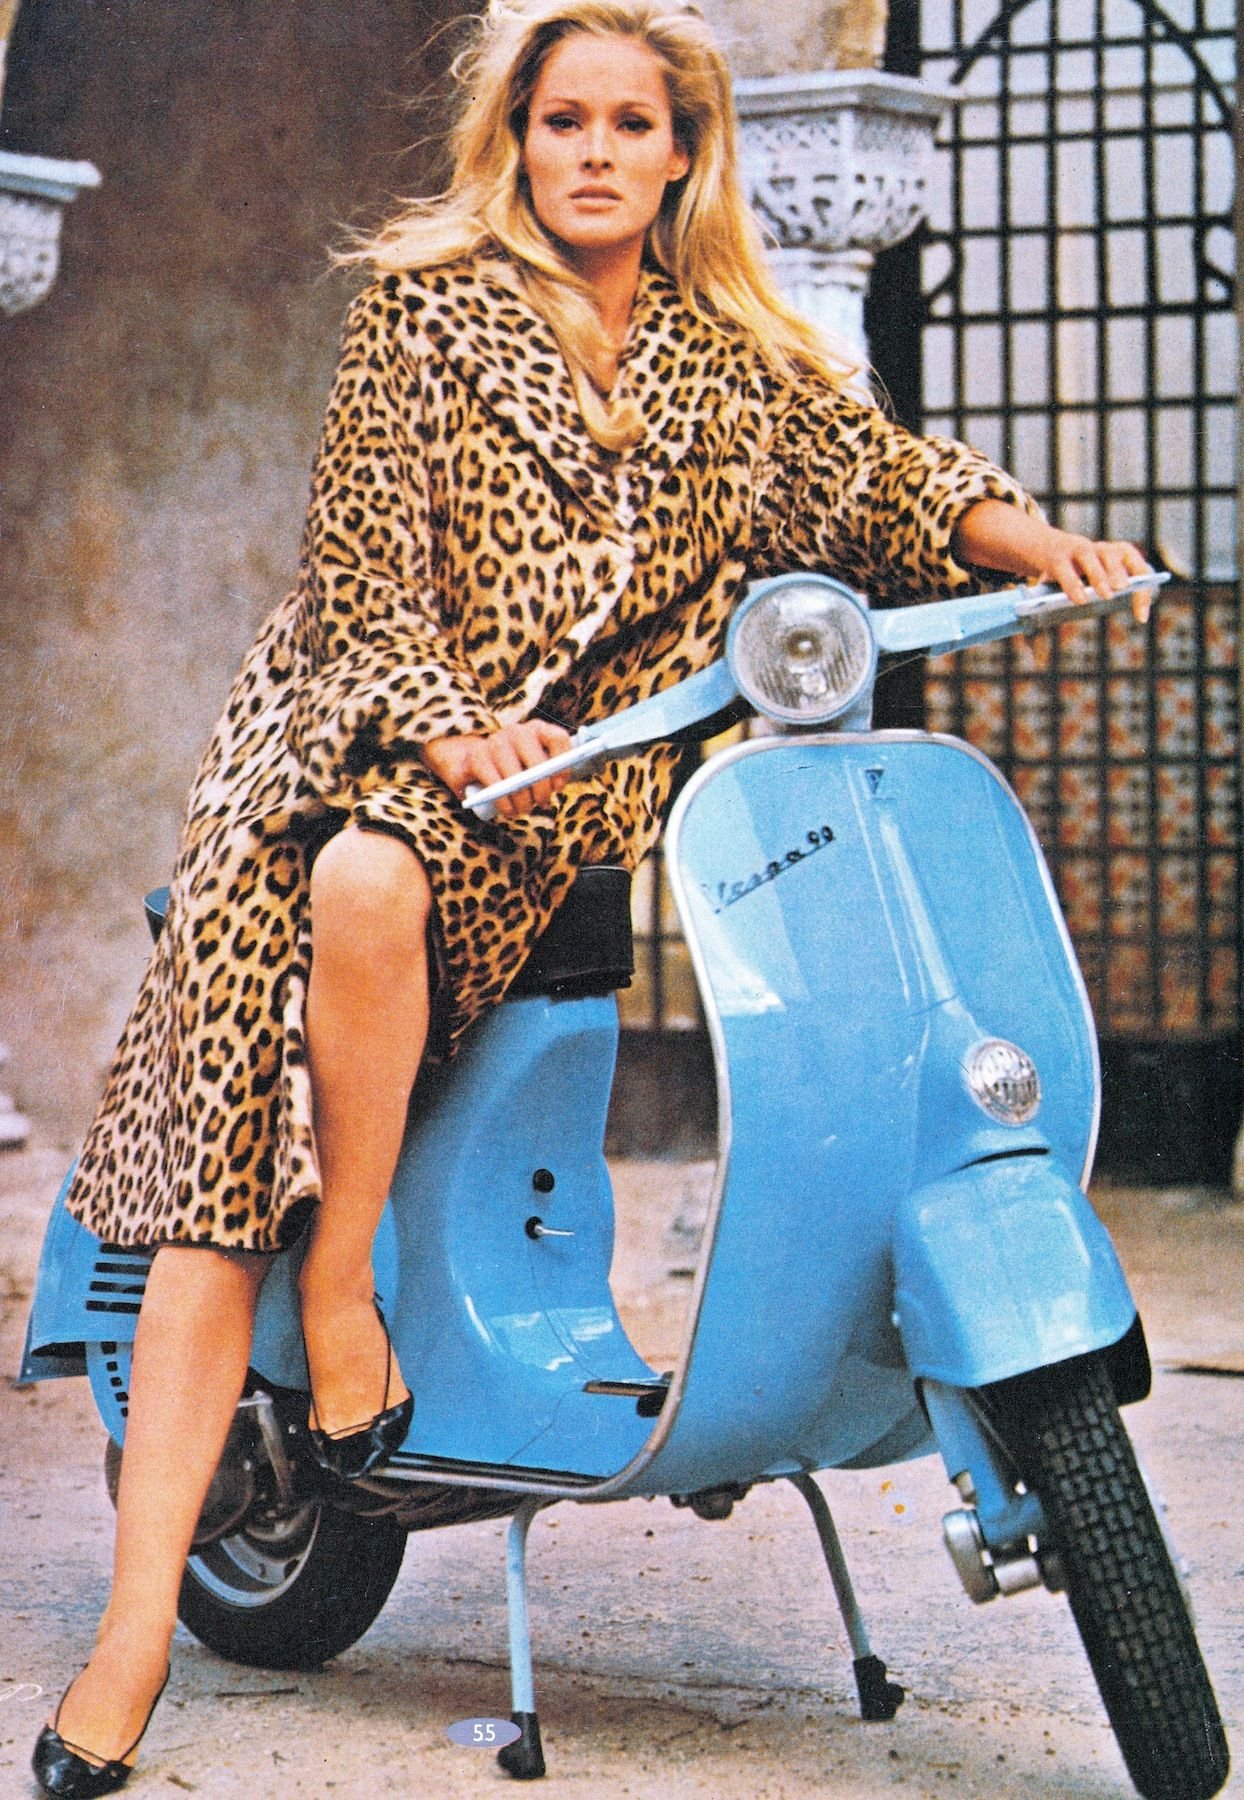 URSULA ANDRESS the original Bond girl & Vespa 1965 calendar bella ...